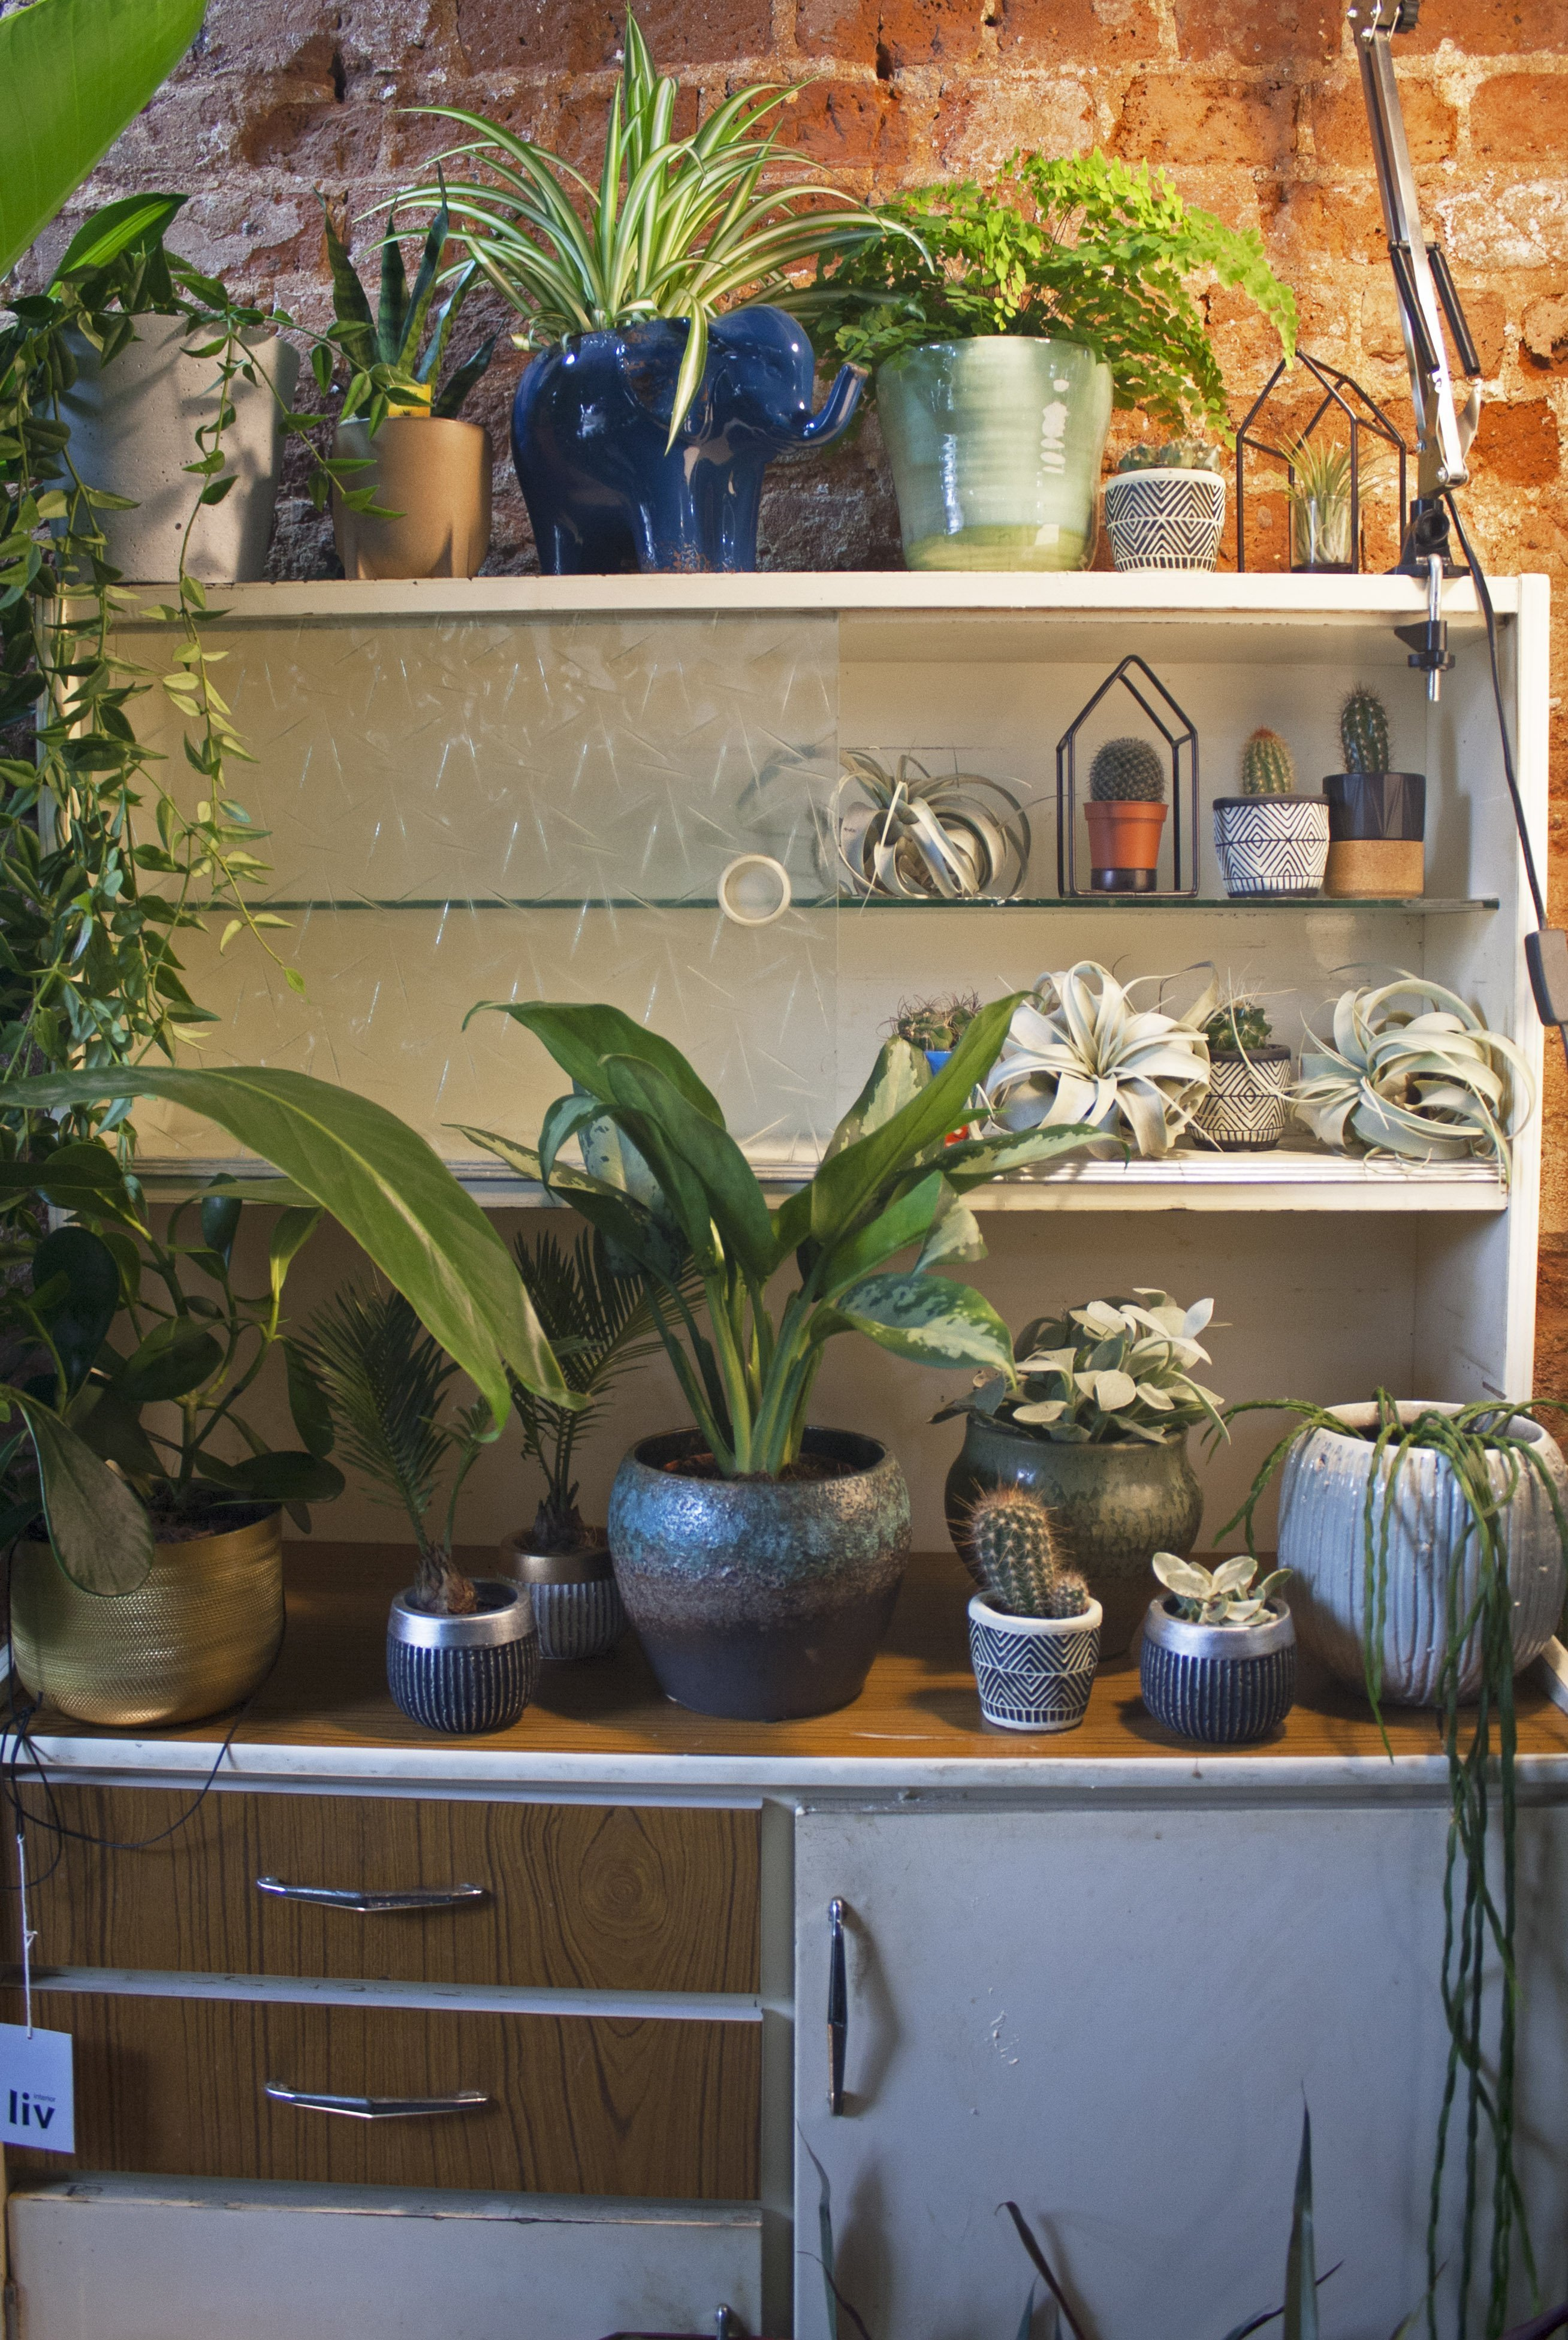 Cabinet with plants in Conservatory Archives, Hackney